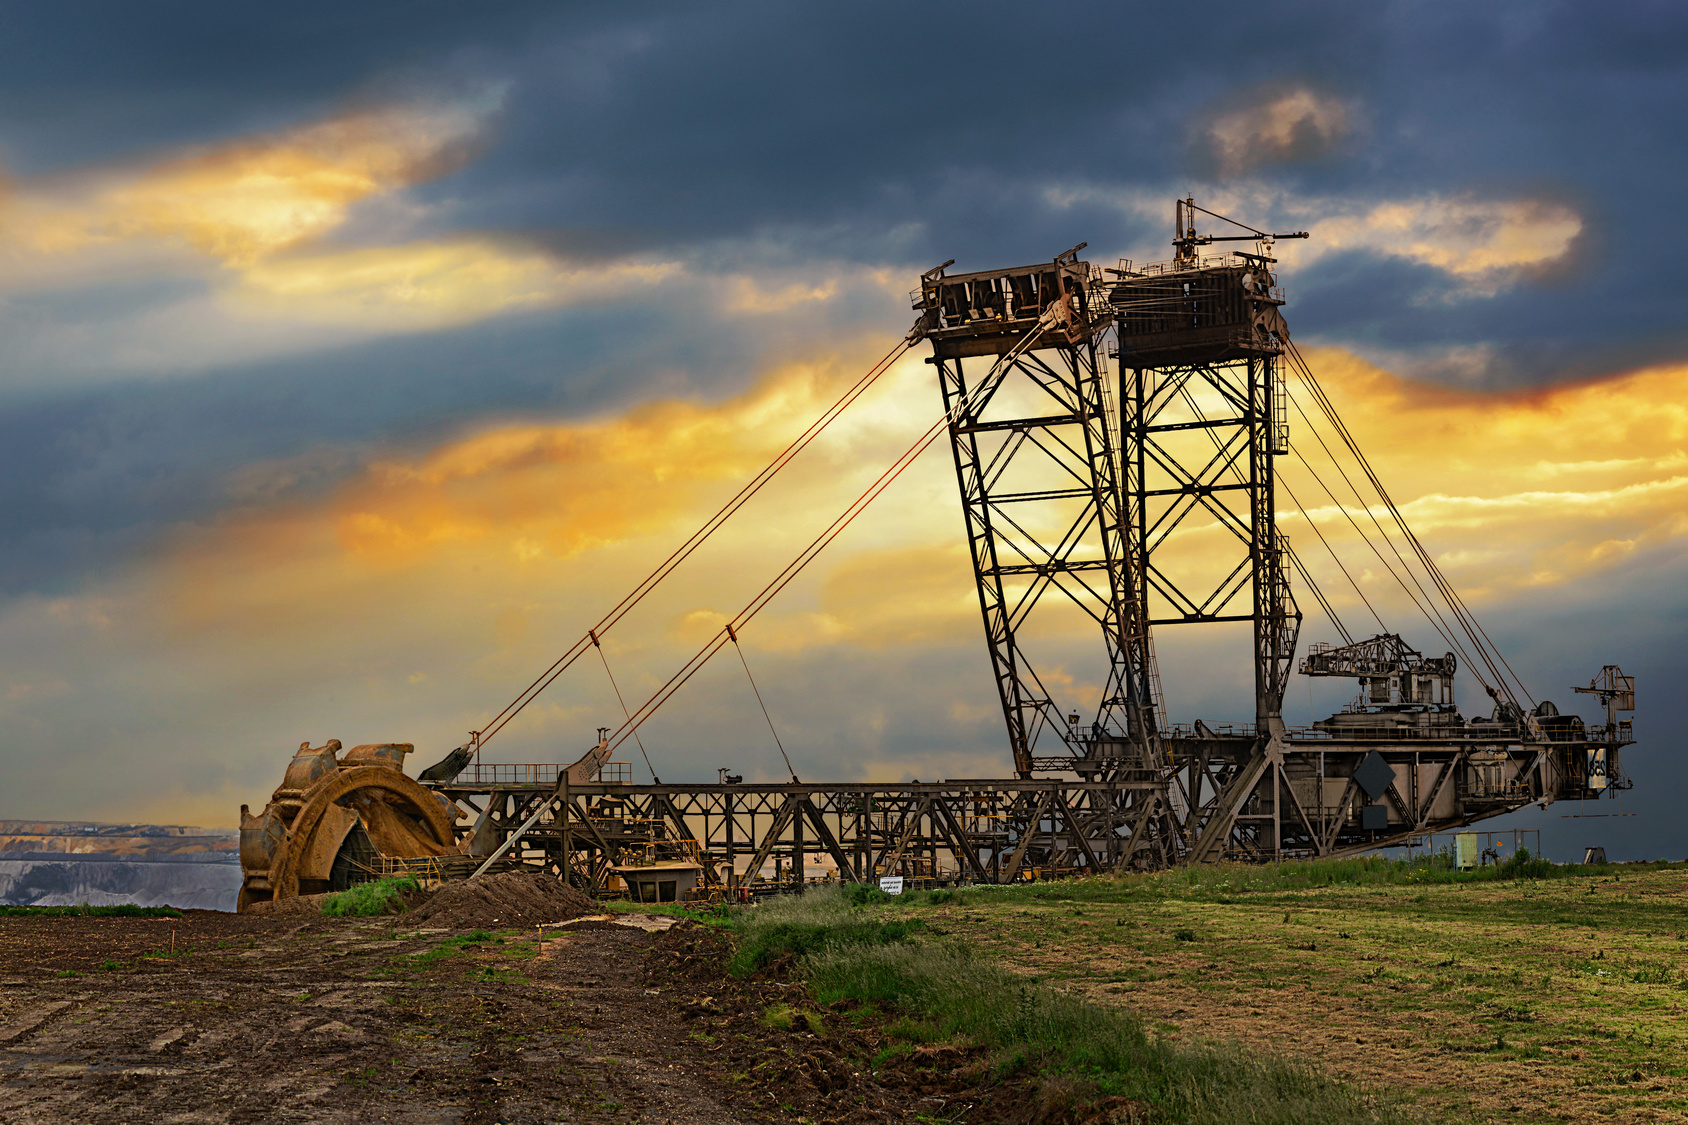 huge bucket wheel excavator in the brown coal mining area of the lower rhine